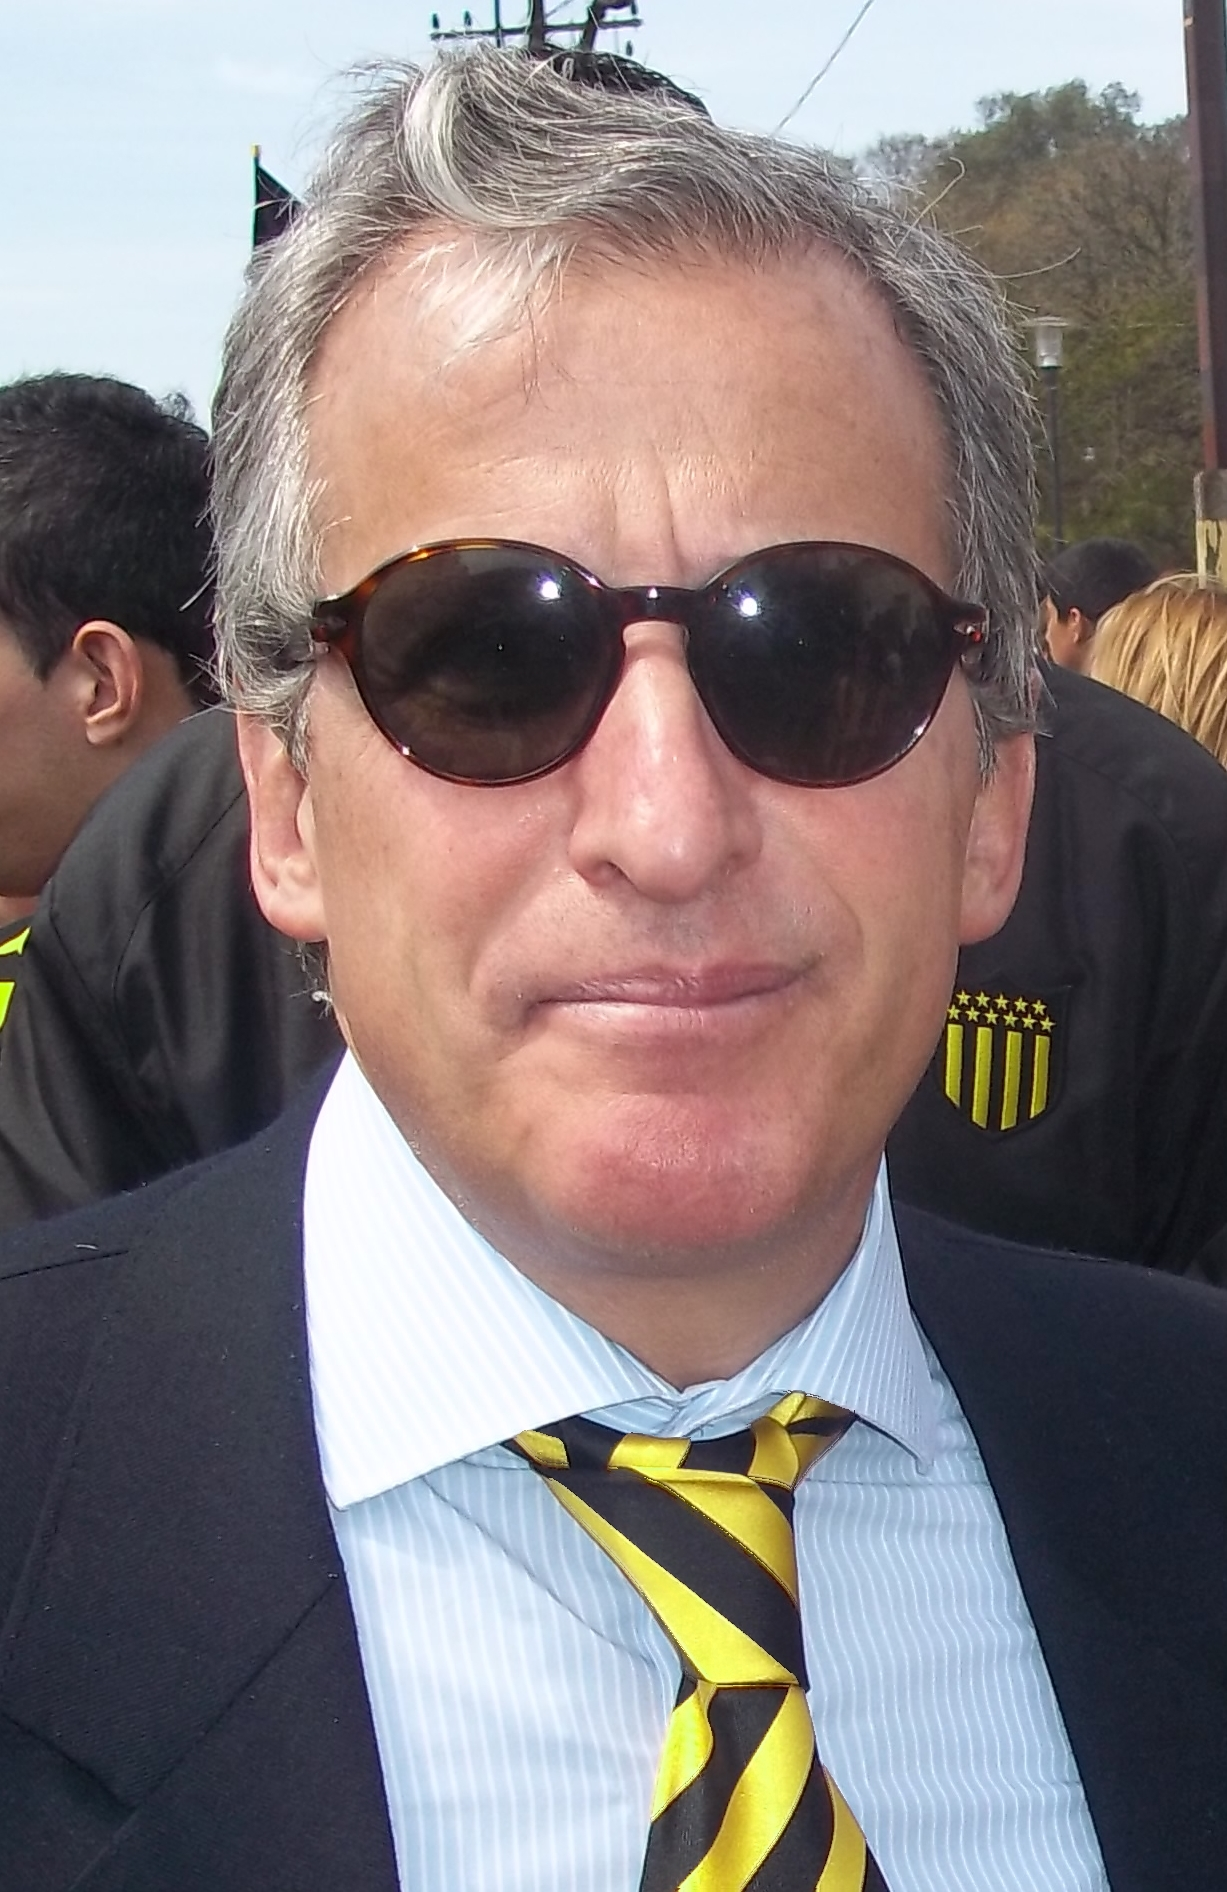 Damiani's (in photo) formal resignation from the FIFA court was confirmed in a statement from the judging chamber without giving details. (Photo: Andrea Mazza/Wikipedia)